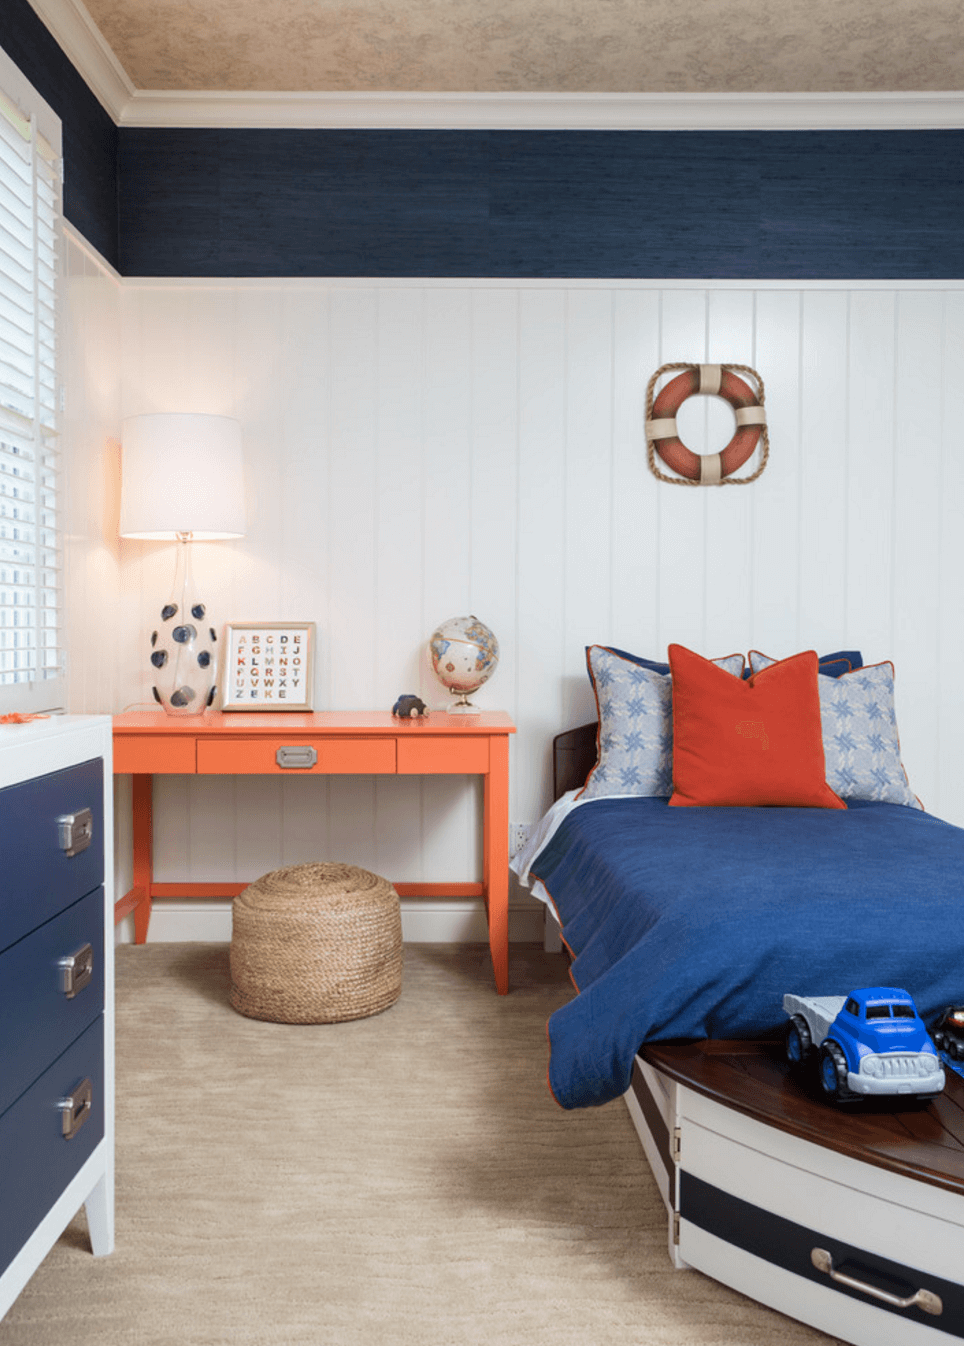 28 Whimsical Ways We Add Color To A Kids Room